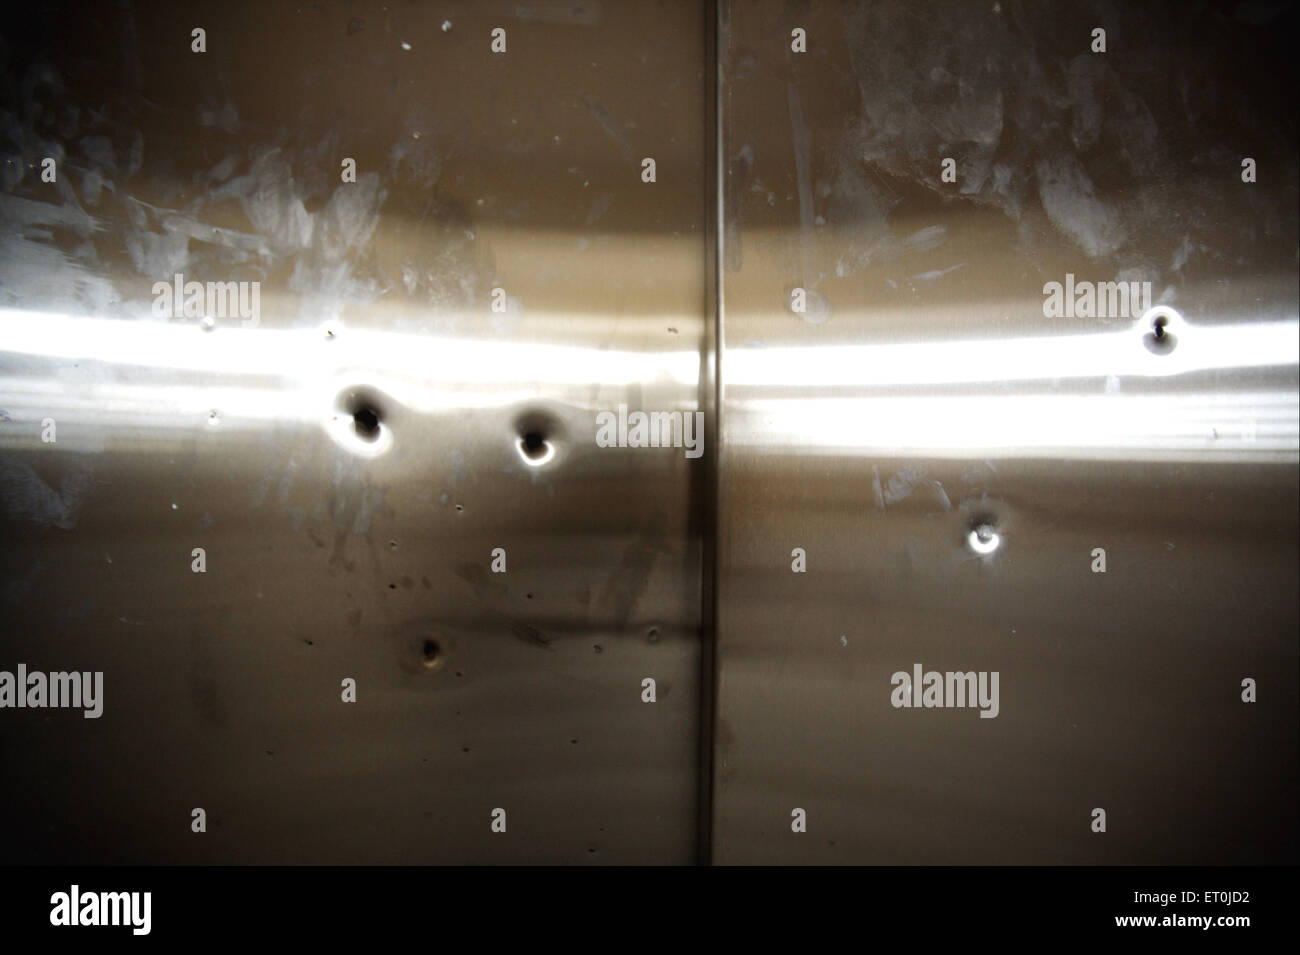 Bullets marks on lift of Cama and Albless hospital in terrorist attack by Deccan Mujahedeen on 26th November 2008 - Stock Image